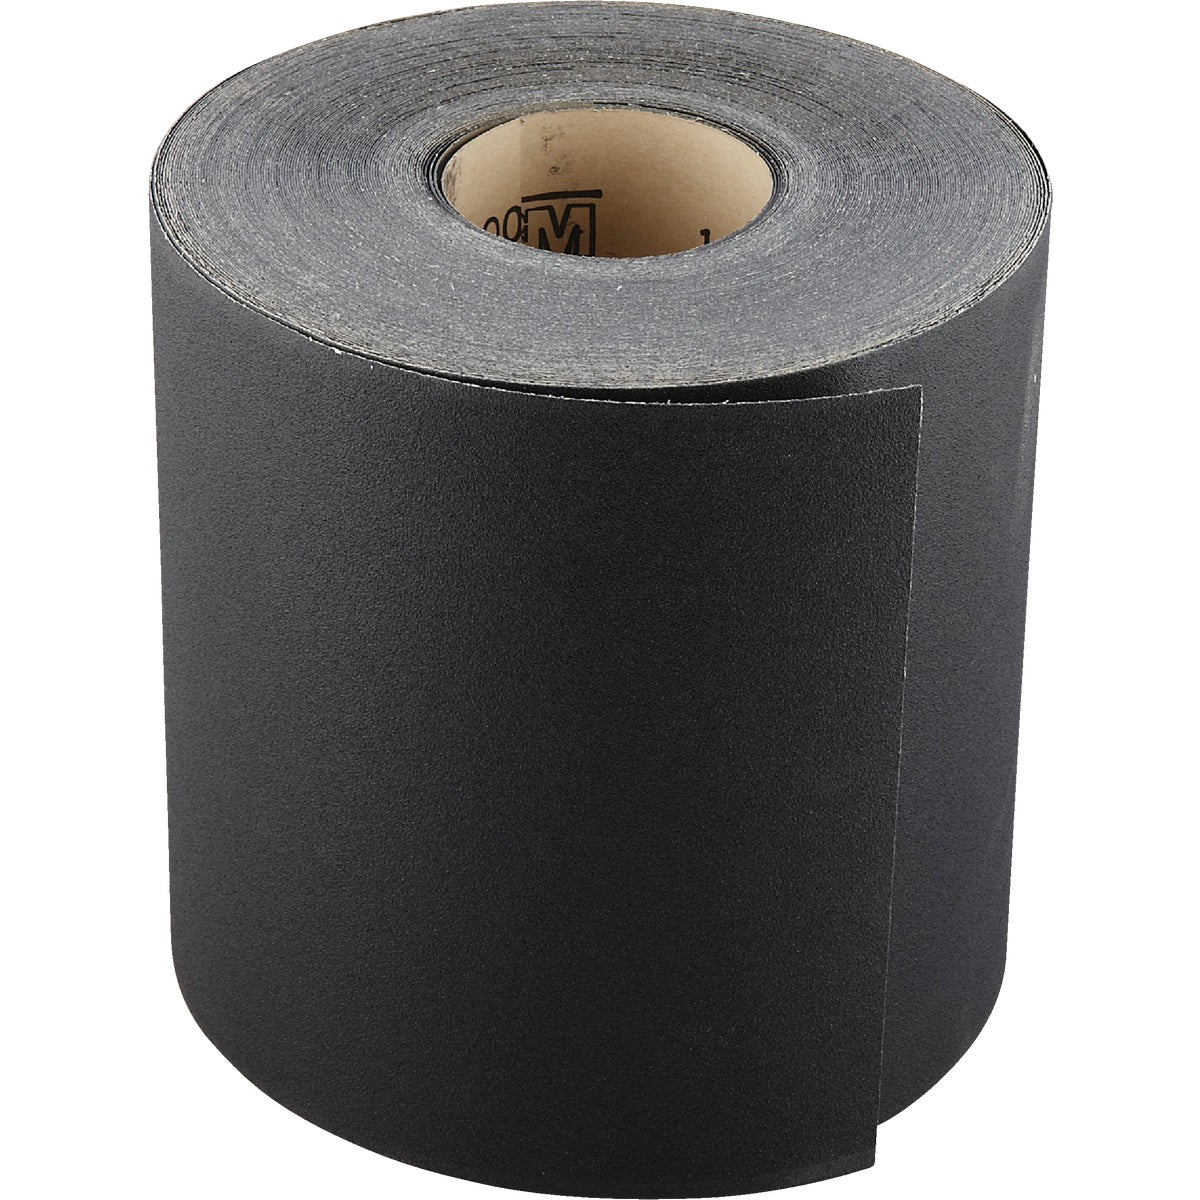 100G FLOOR SANDPAPER - 15299 by 3m Co